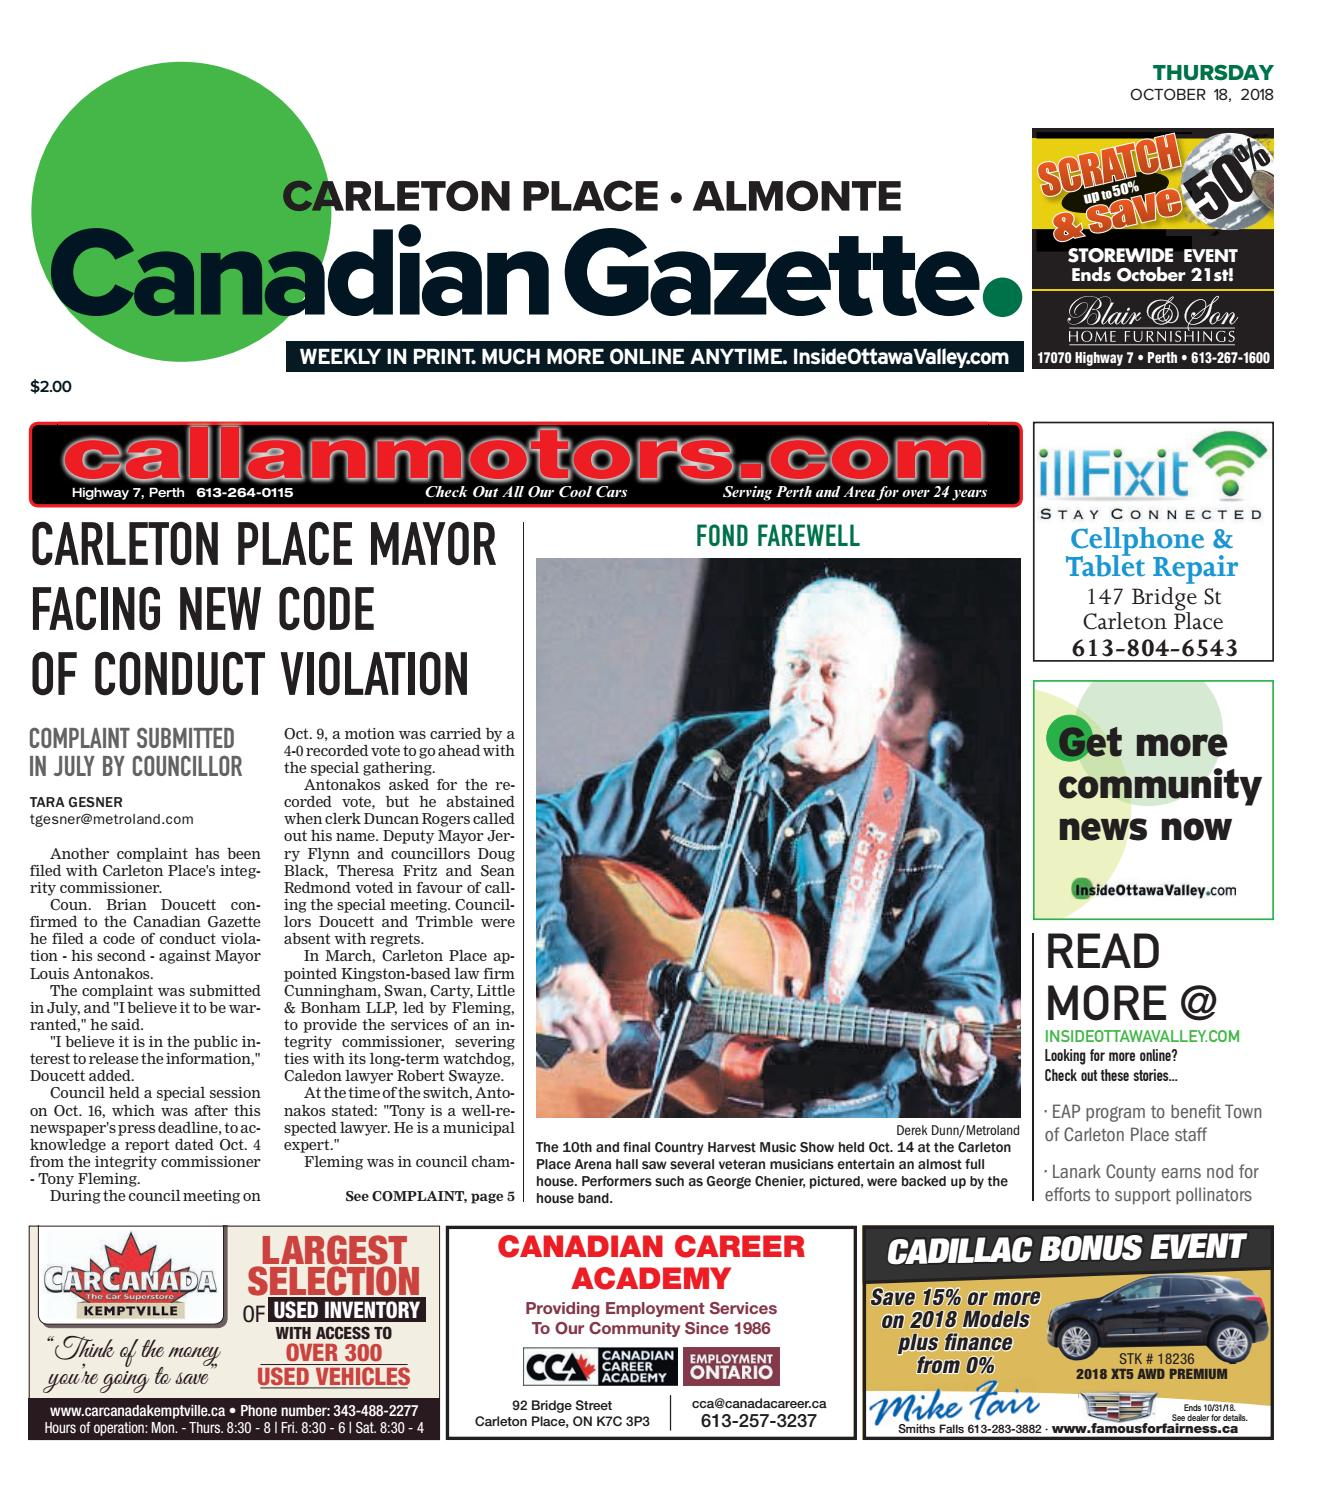 Otv C A 20181018 By Metroland East Almonte Carleton Place Canadian The Single Large Doublesided Circuit Board From Canon Canola Gazette Issuu